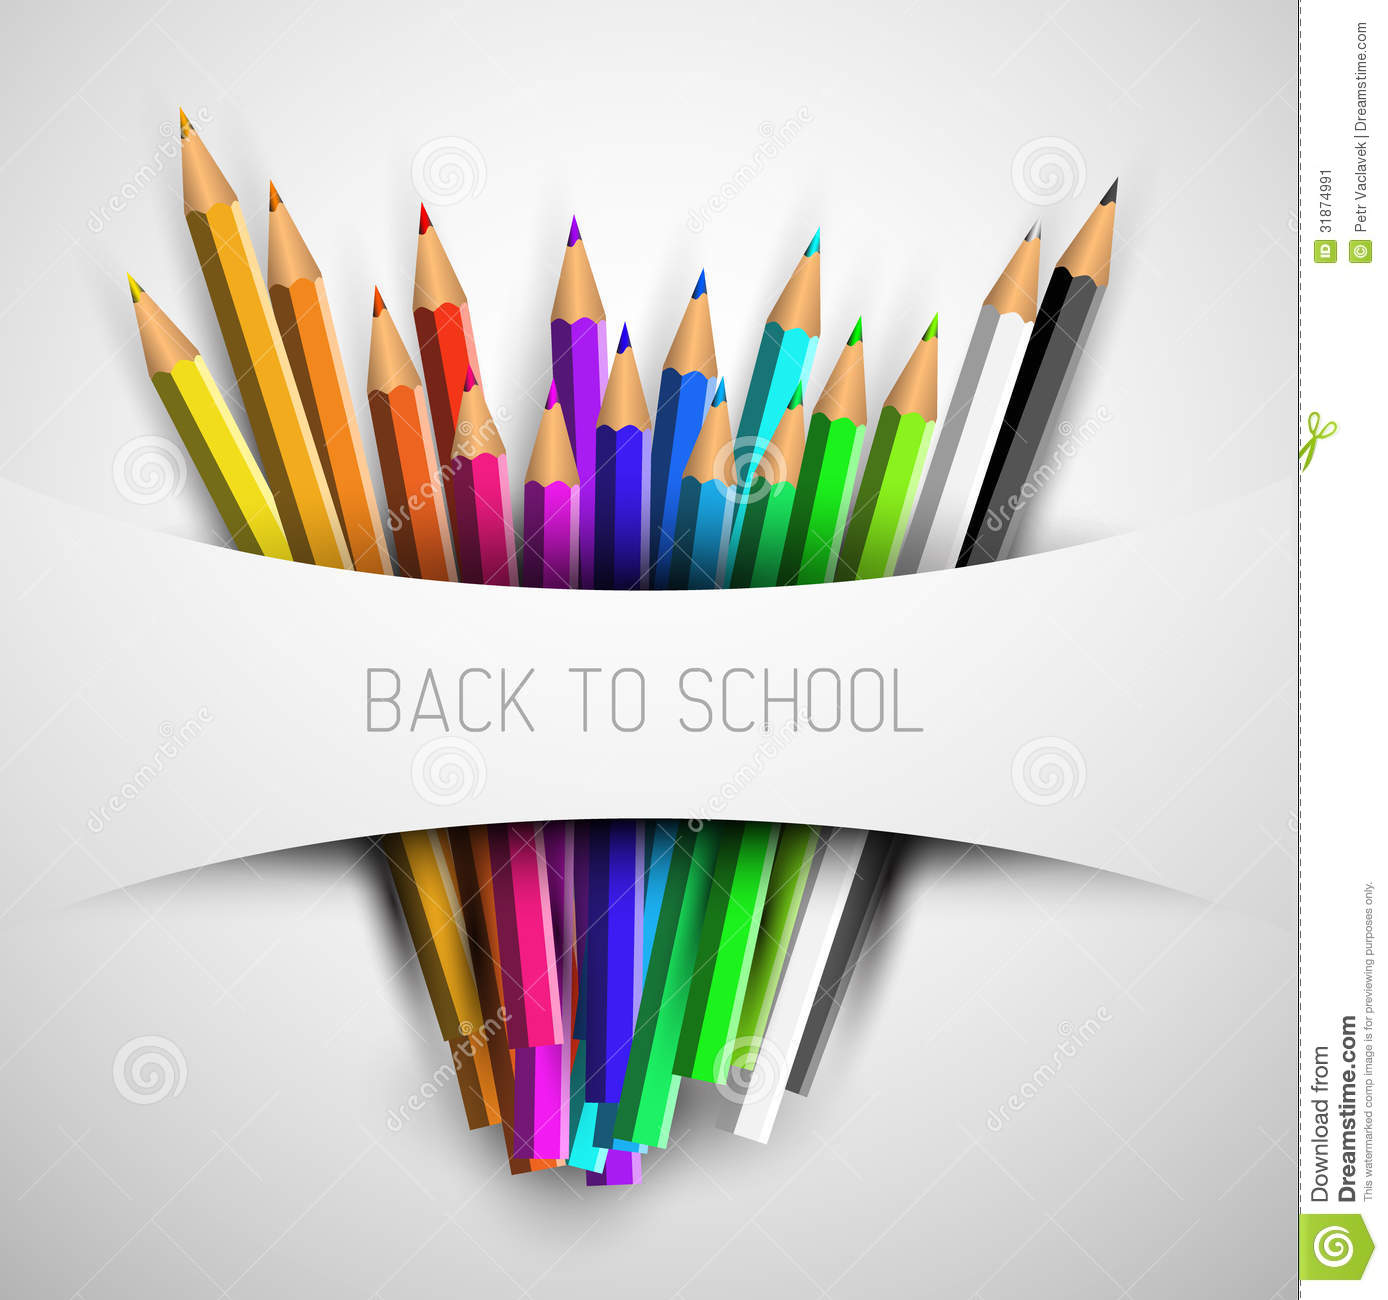 Vector Back To School Poster Stock Vector - Image: 31874991